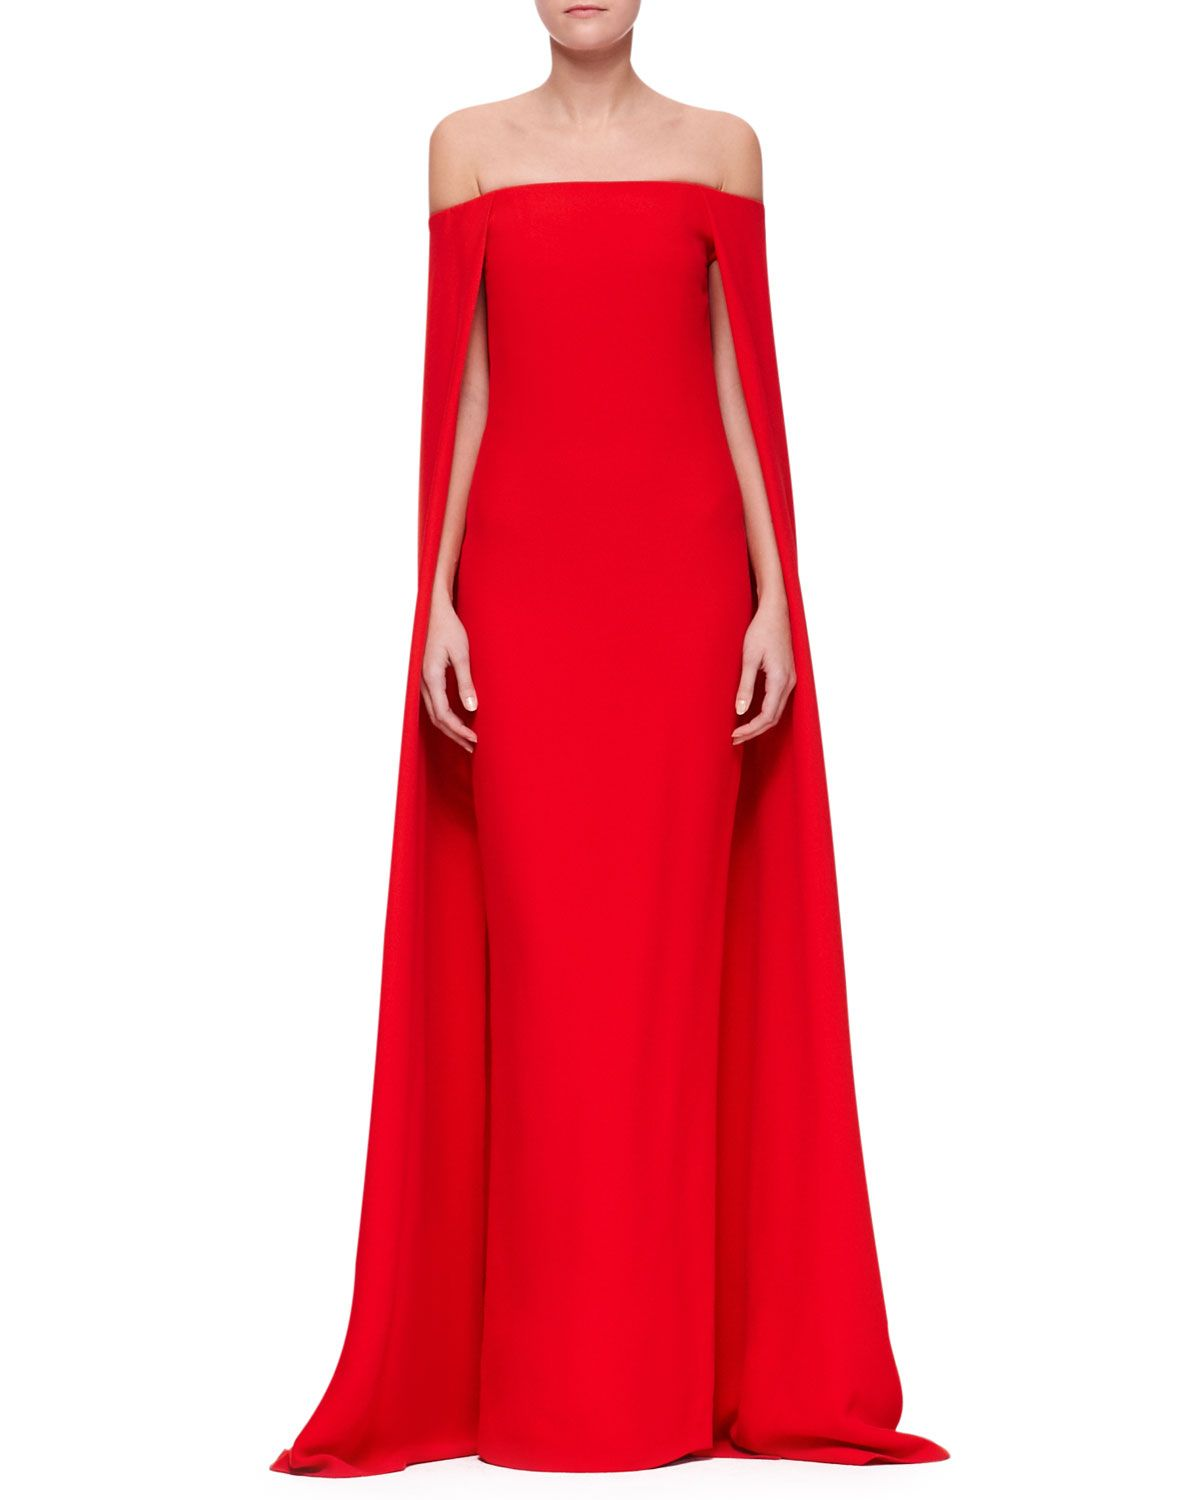 Ralph Lauren Collection Audrey Cape Evening Gown - Neiman Marcus ...